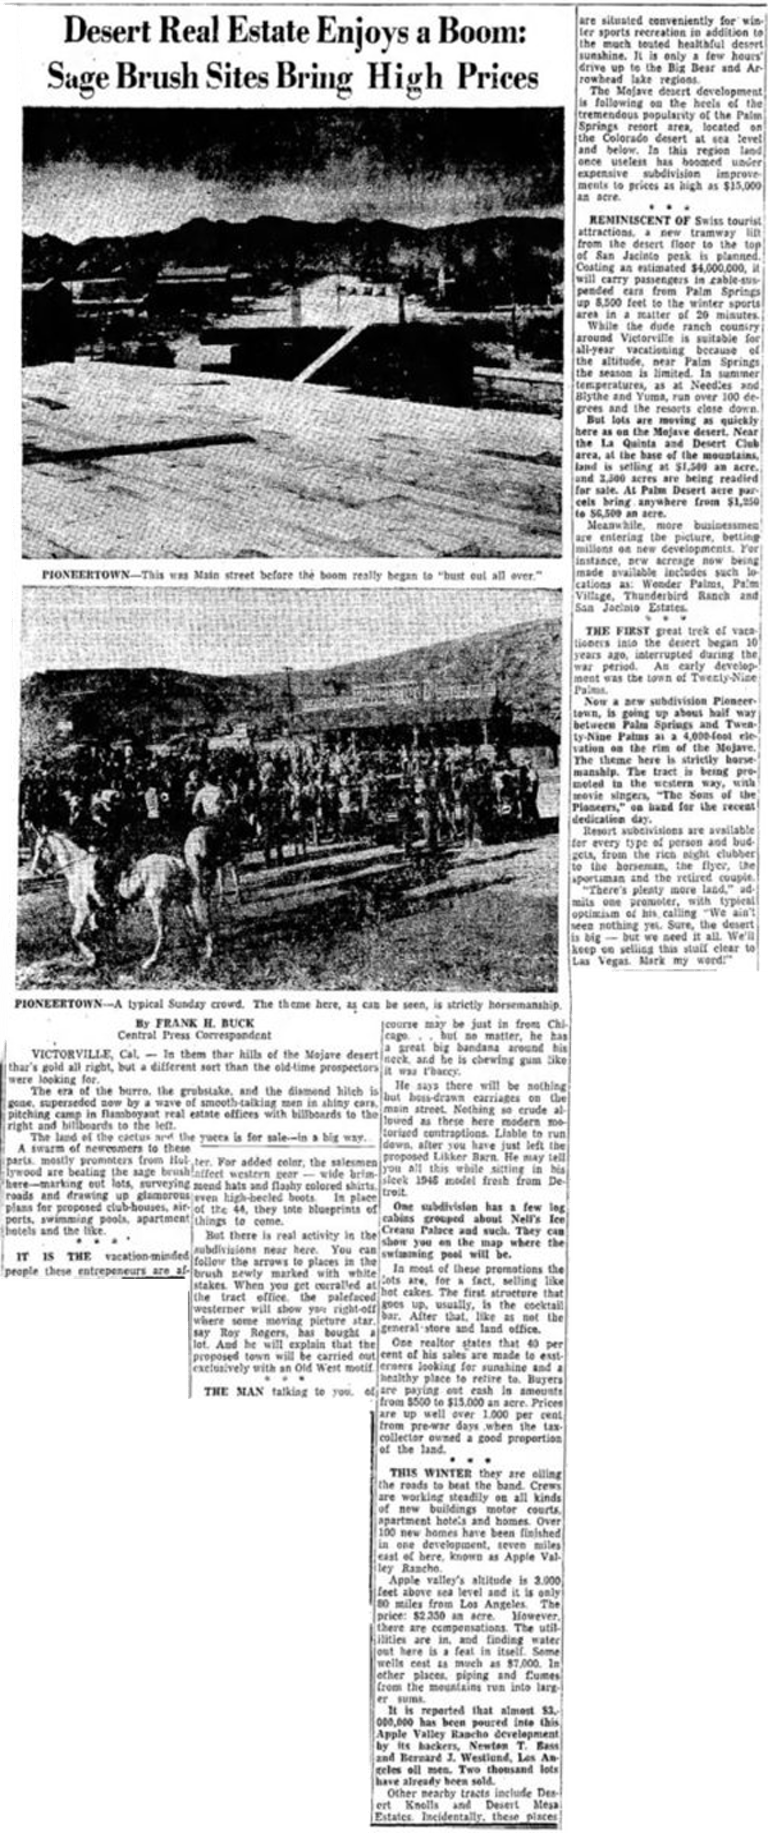 Mar. 29, 1948 - The Evening Independent